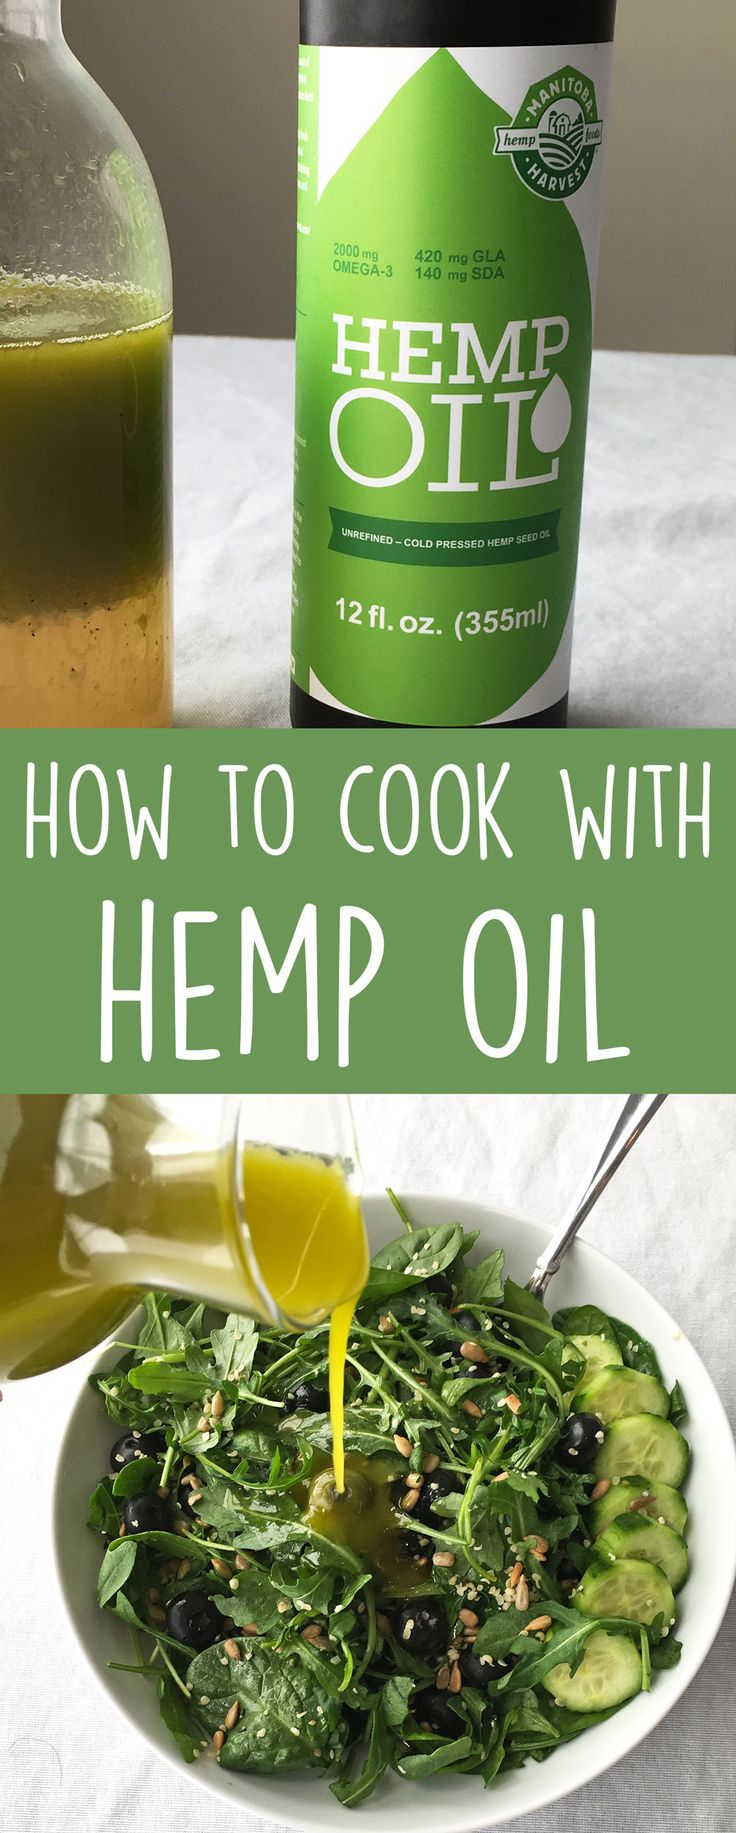 Hemp oil has a ton amazing health benefits. You can easily reap those benefits by adding to your food and recipes! Learn how to cook with hemp oil.